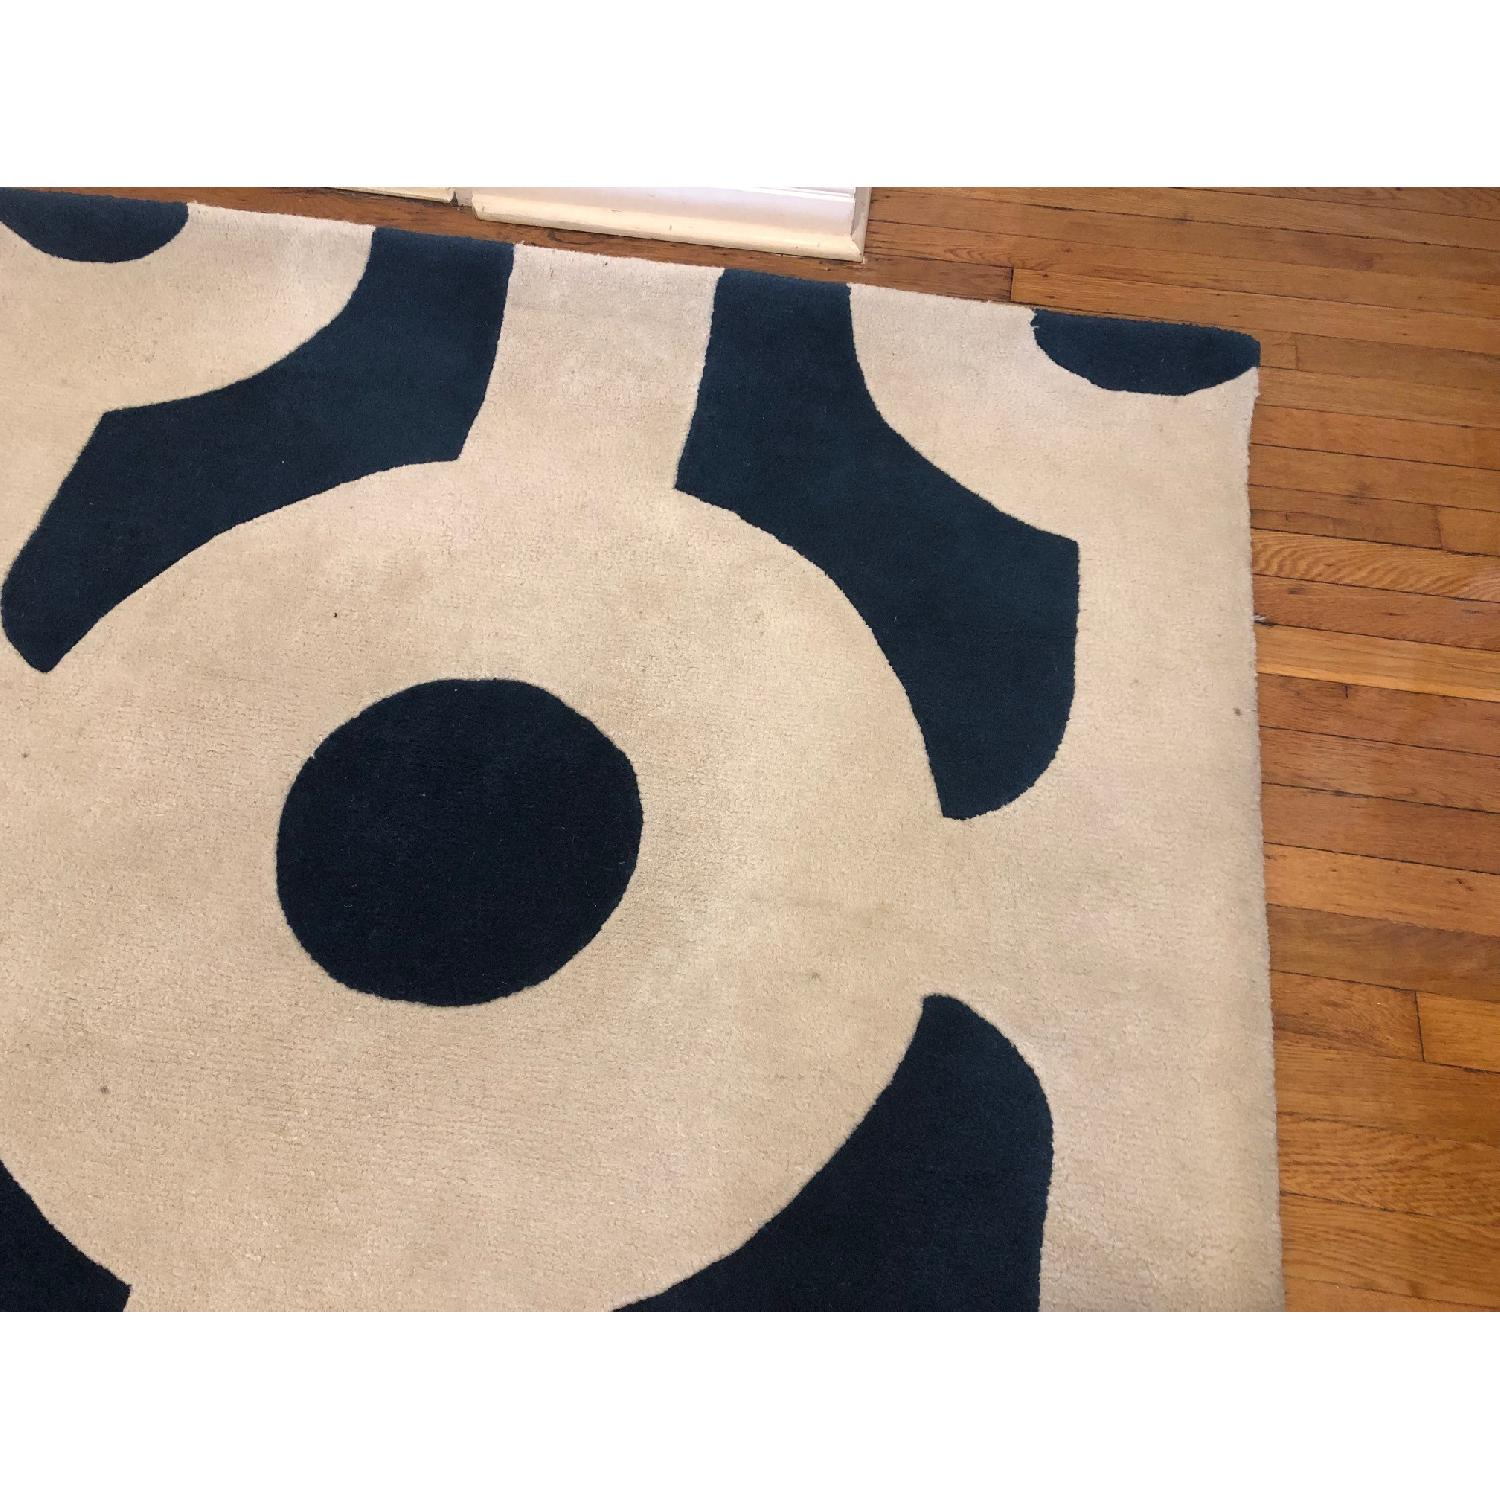 CB2 Roundabout Area Rug-4